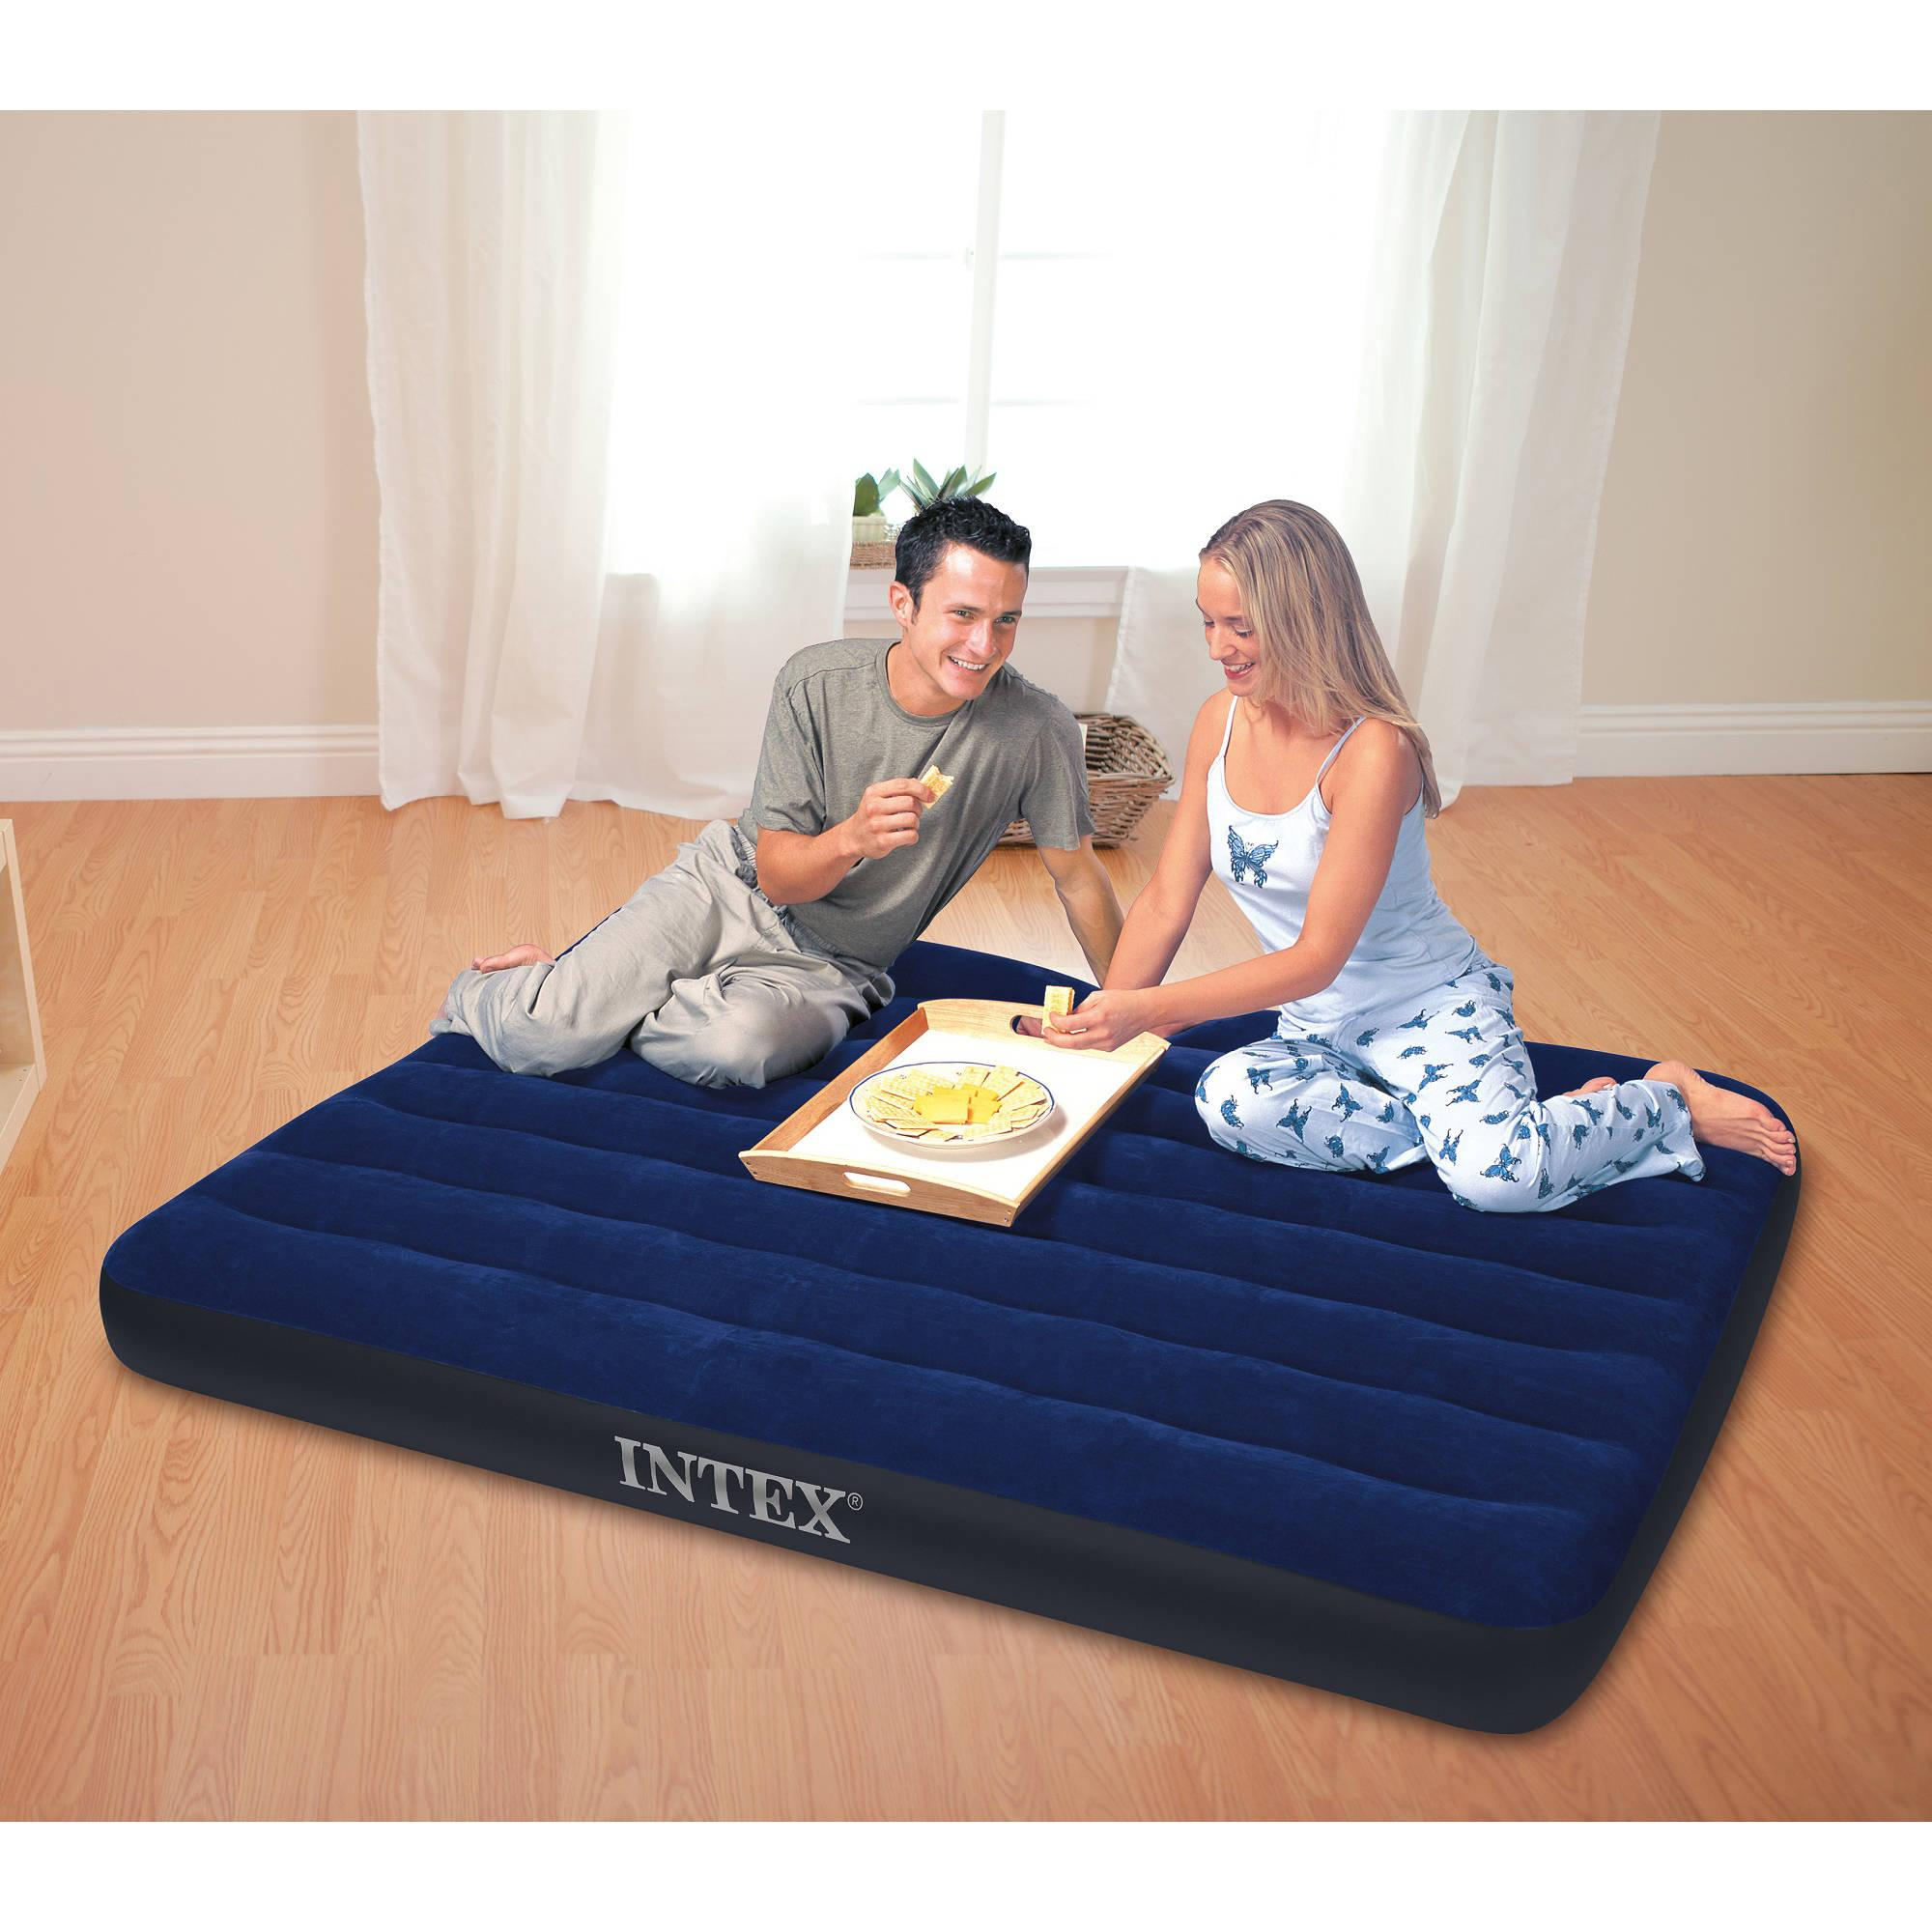 Intex Full 8.75 Classic Downy Inflatable Airbed Mattress